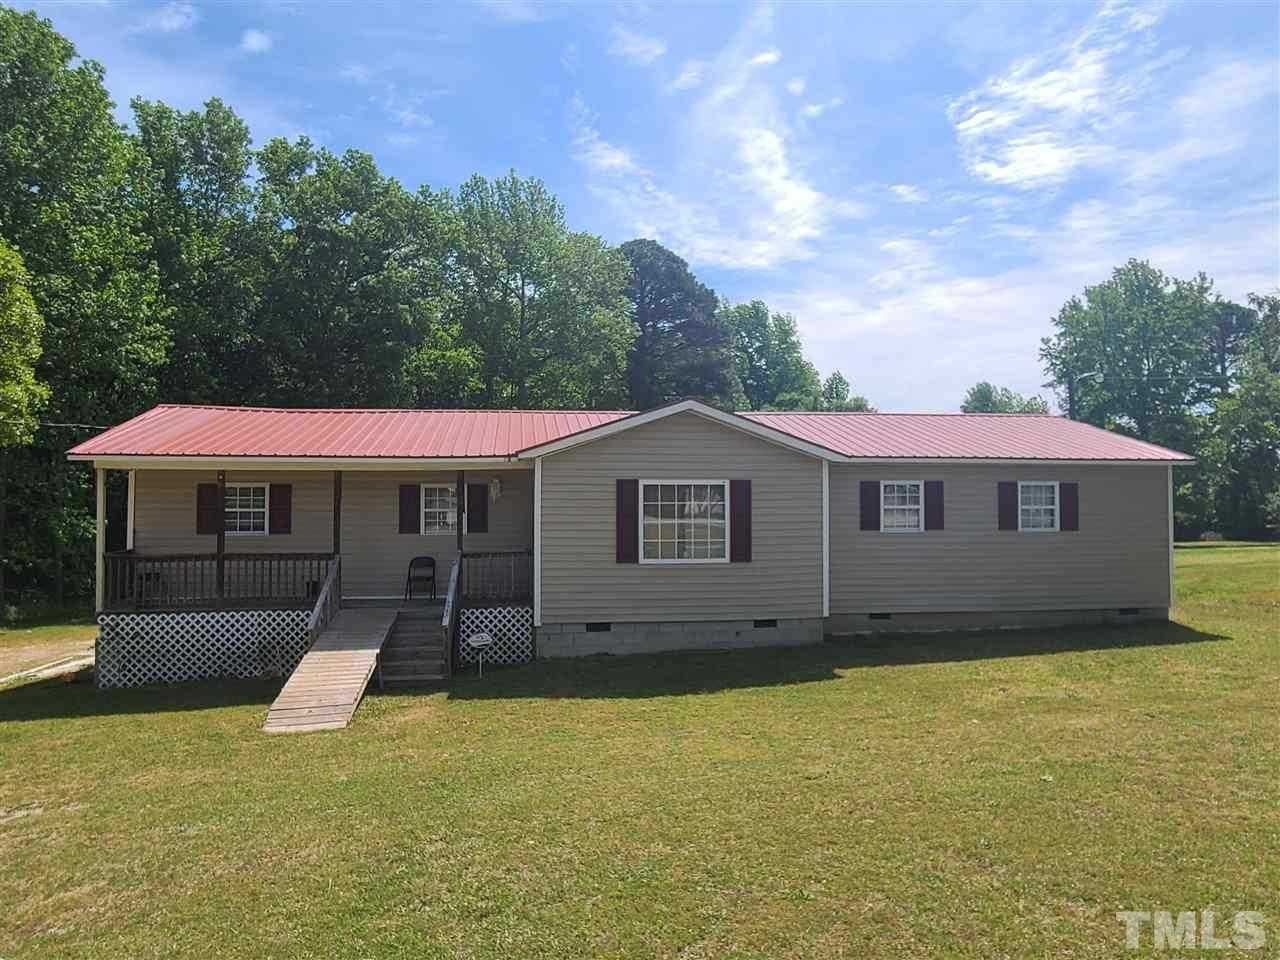 $175,000 - 3Br/2Ba -  for Sale in Not In A Subdivision, Youngsville